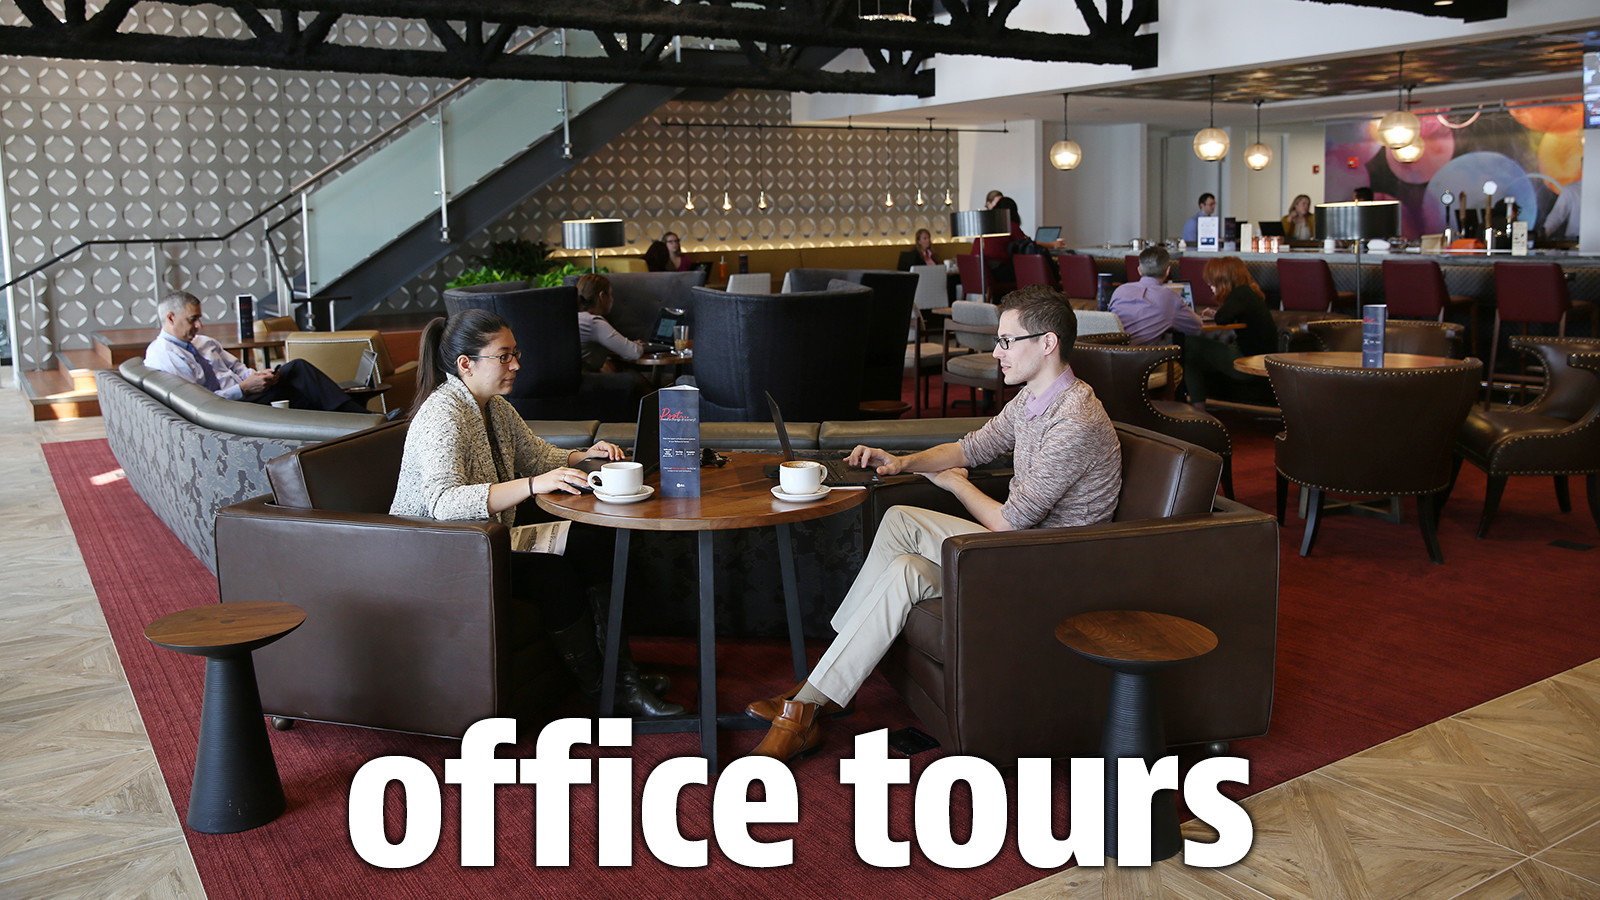 tour stylish office los. JLL Brings Tech-world Touches To Its Own Very Grownup Company · Blue Sky Office Tours Tour Stylish Los